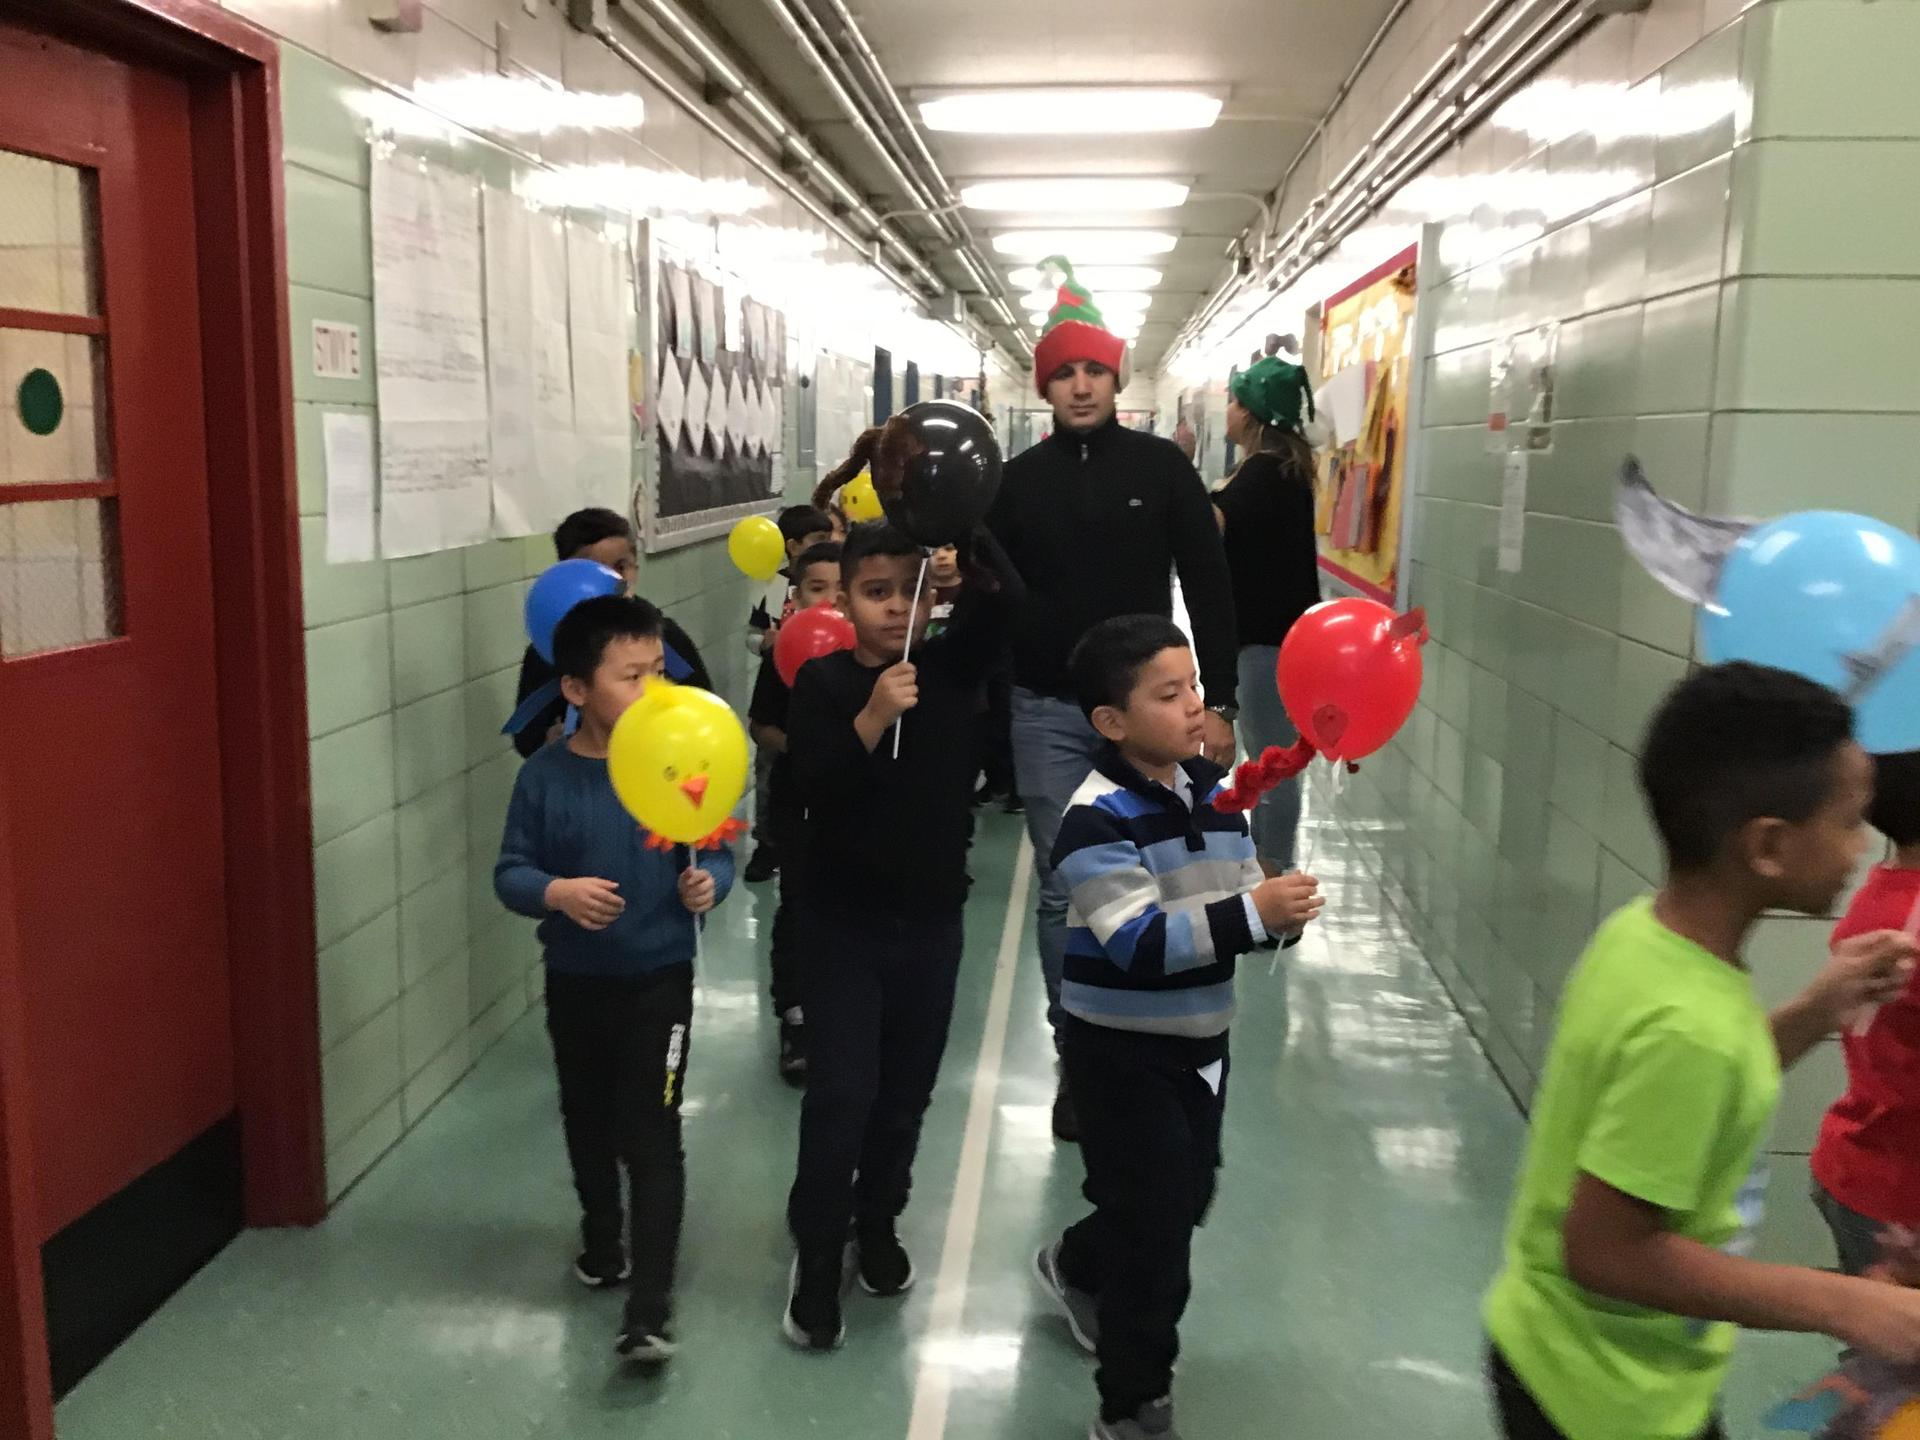 students parading in school hallway with balloons